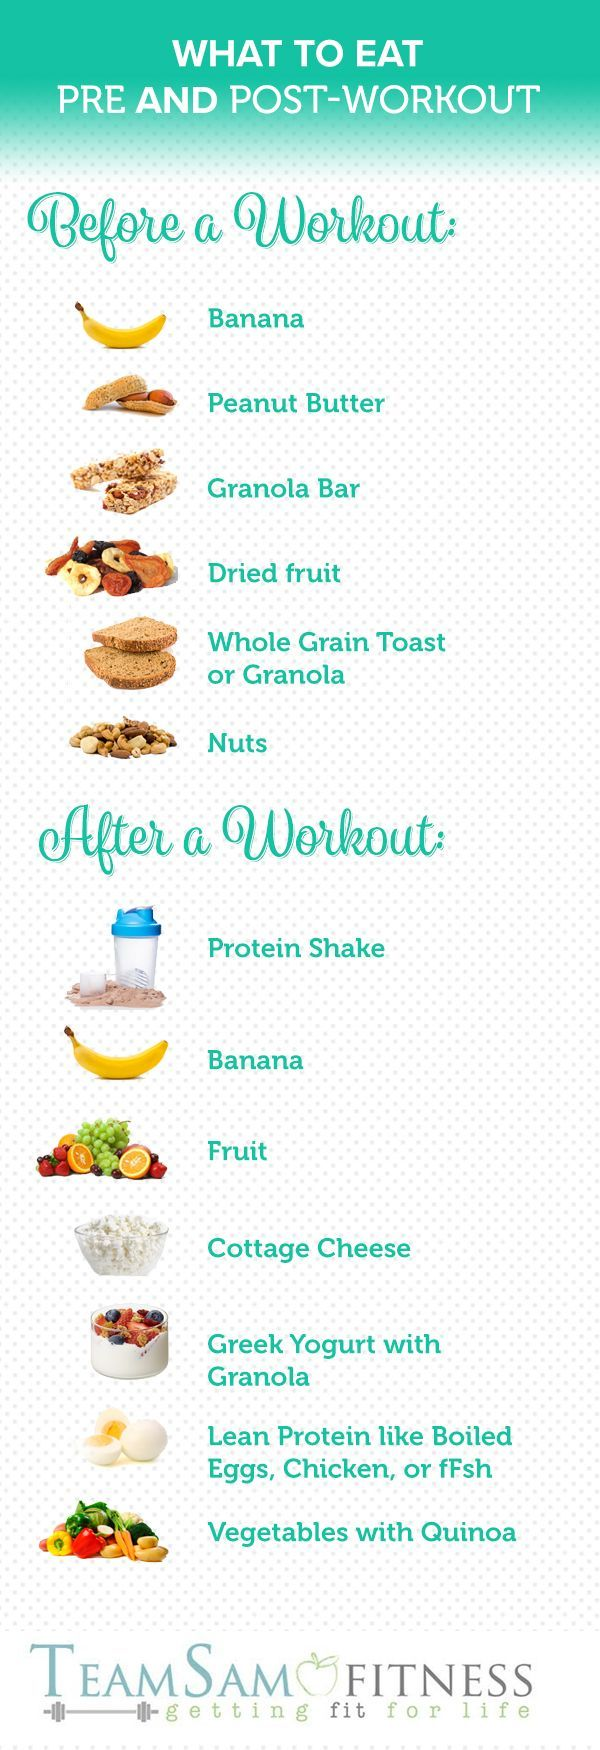 How to lose weight fast and easy at home picture 4